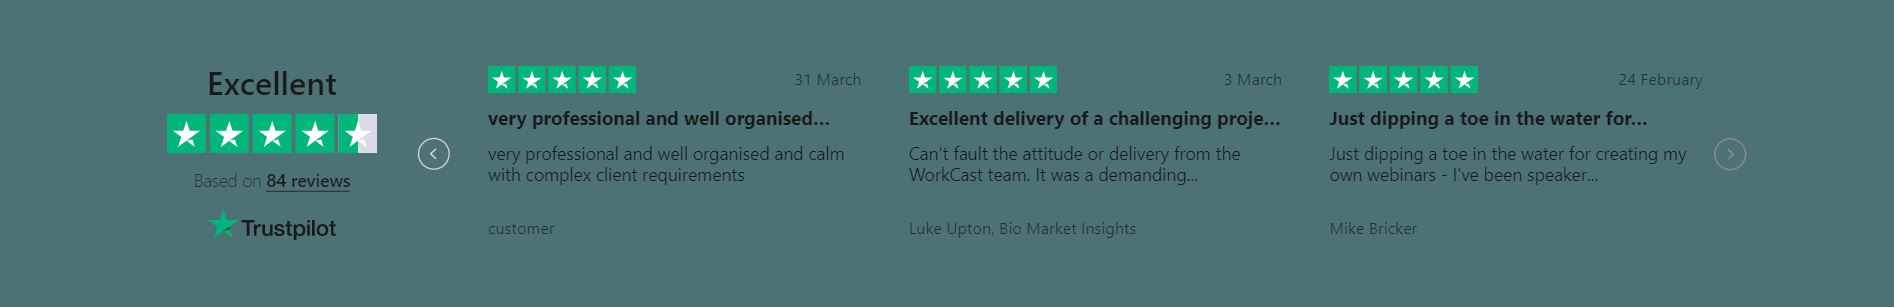 trustpilot-homepage-screenshot